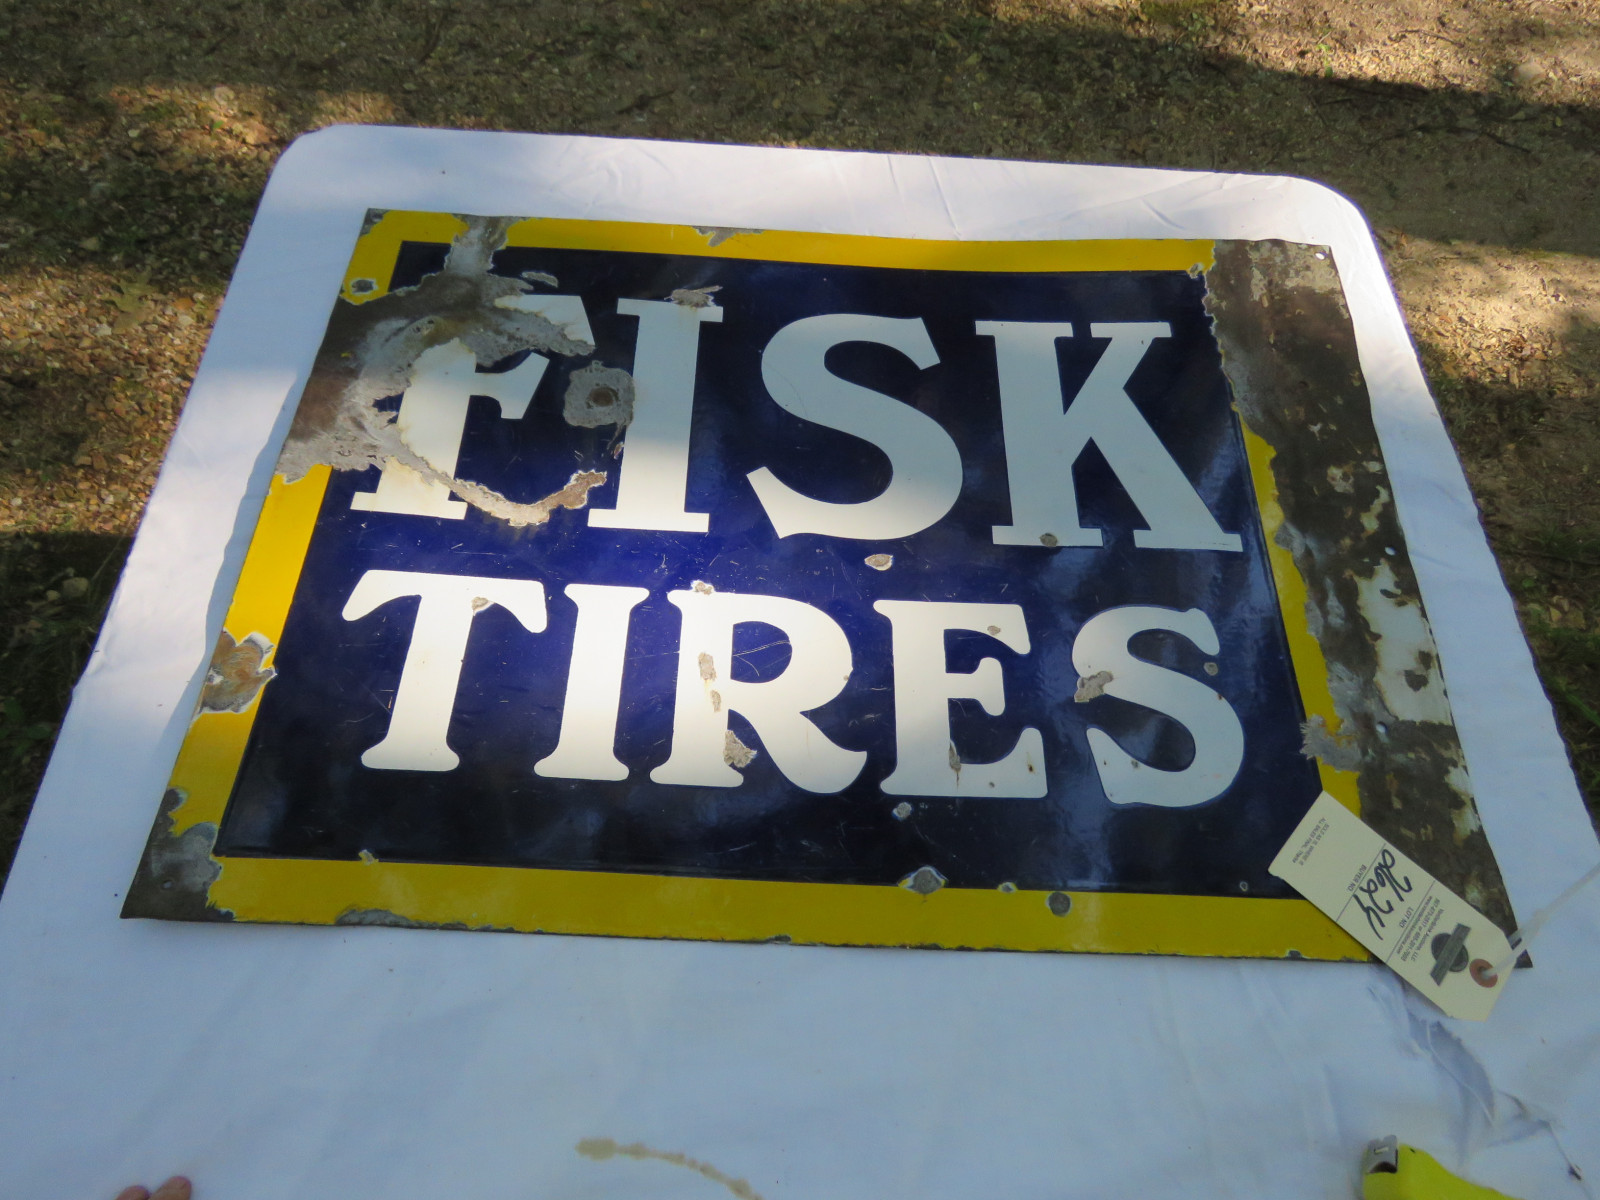 Fisk Tires DS Porcelain Sign 20X28 inches - Image 2